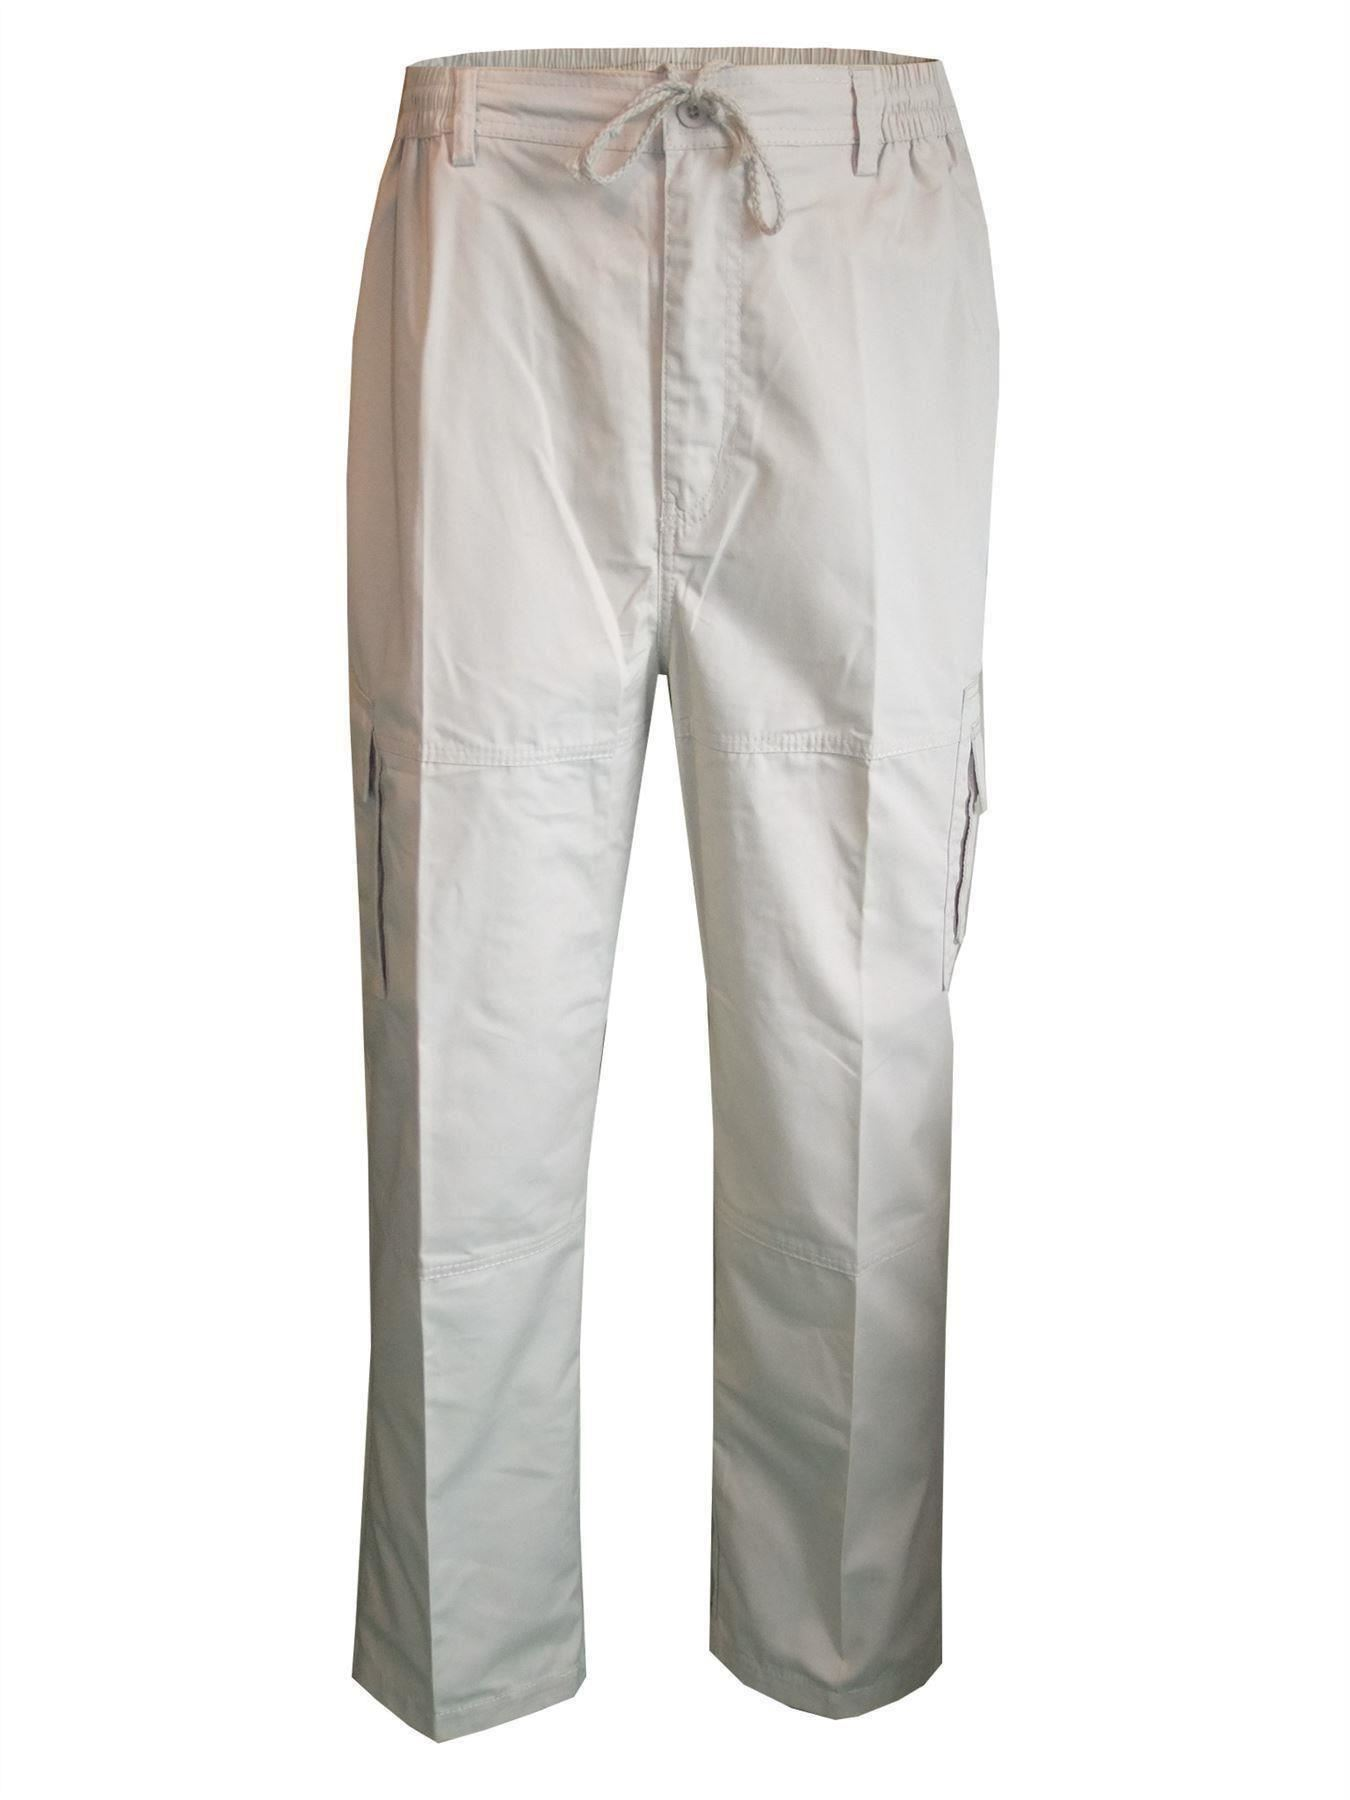 Men-Straight-Trousers-Cargo-Combat-Cotton-Elasticated-Zip-Fly-Casual-Pants-M-3XL thumbnail 15